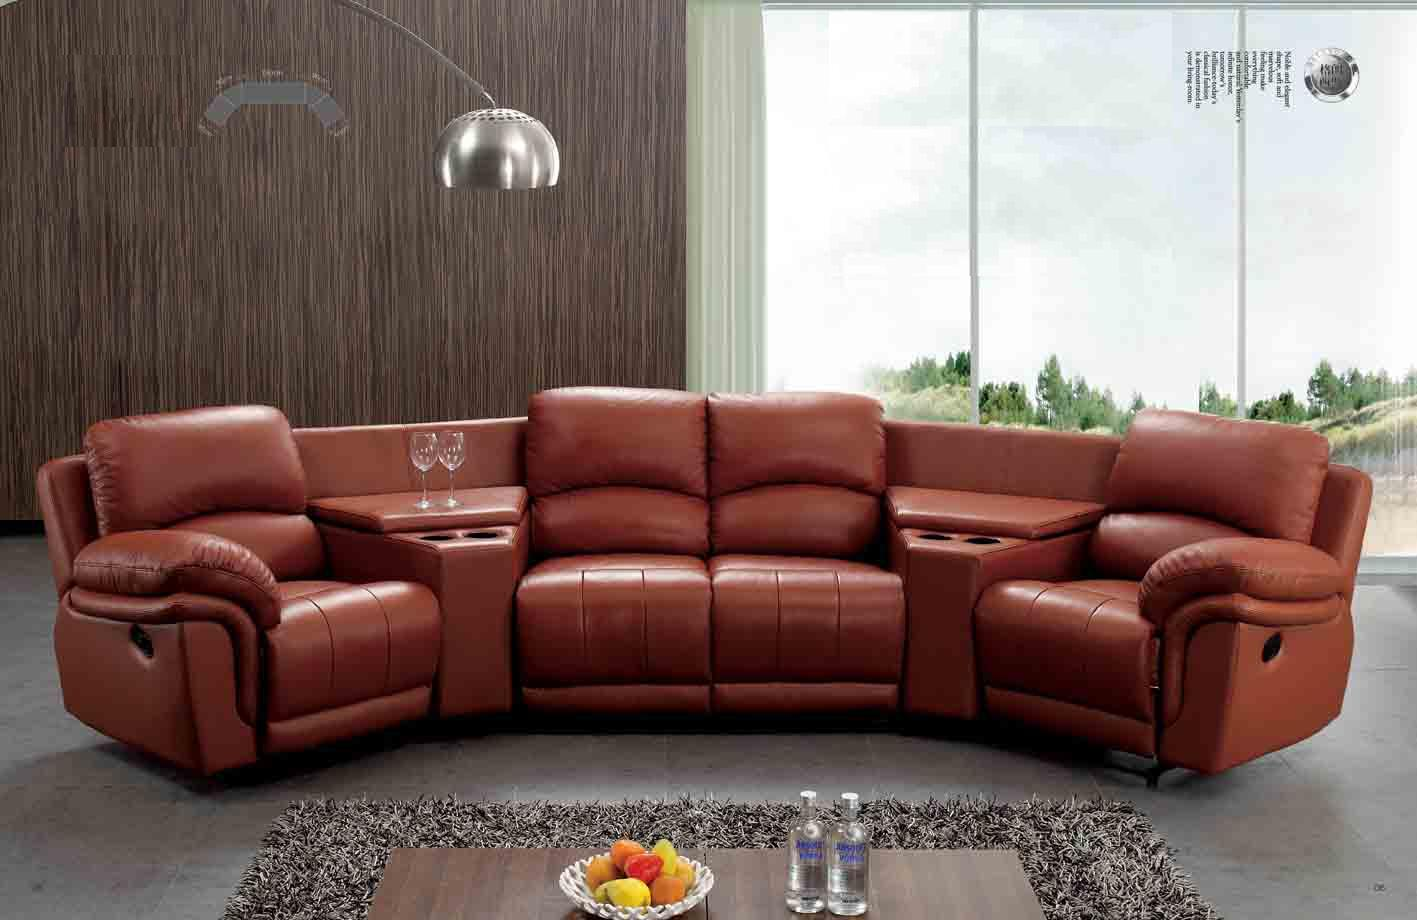 2016 Contemporary Leather Corner Recliner Sofa With 2 Cup Holders Ls607 Buy Italy Leather Recliner Sofa Yellow Leather Recliner Sofa Chesterfield